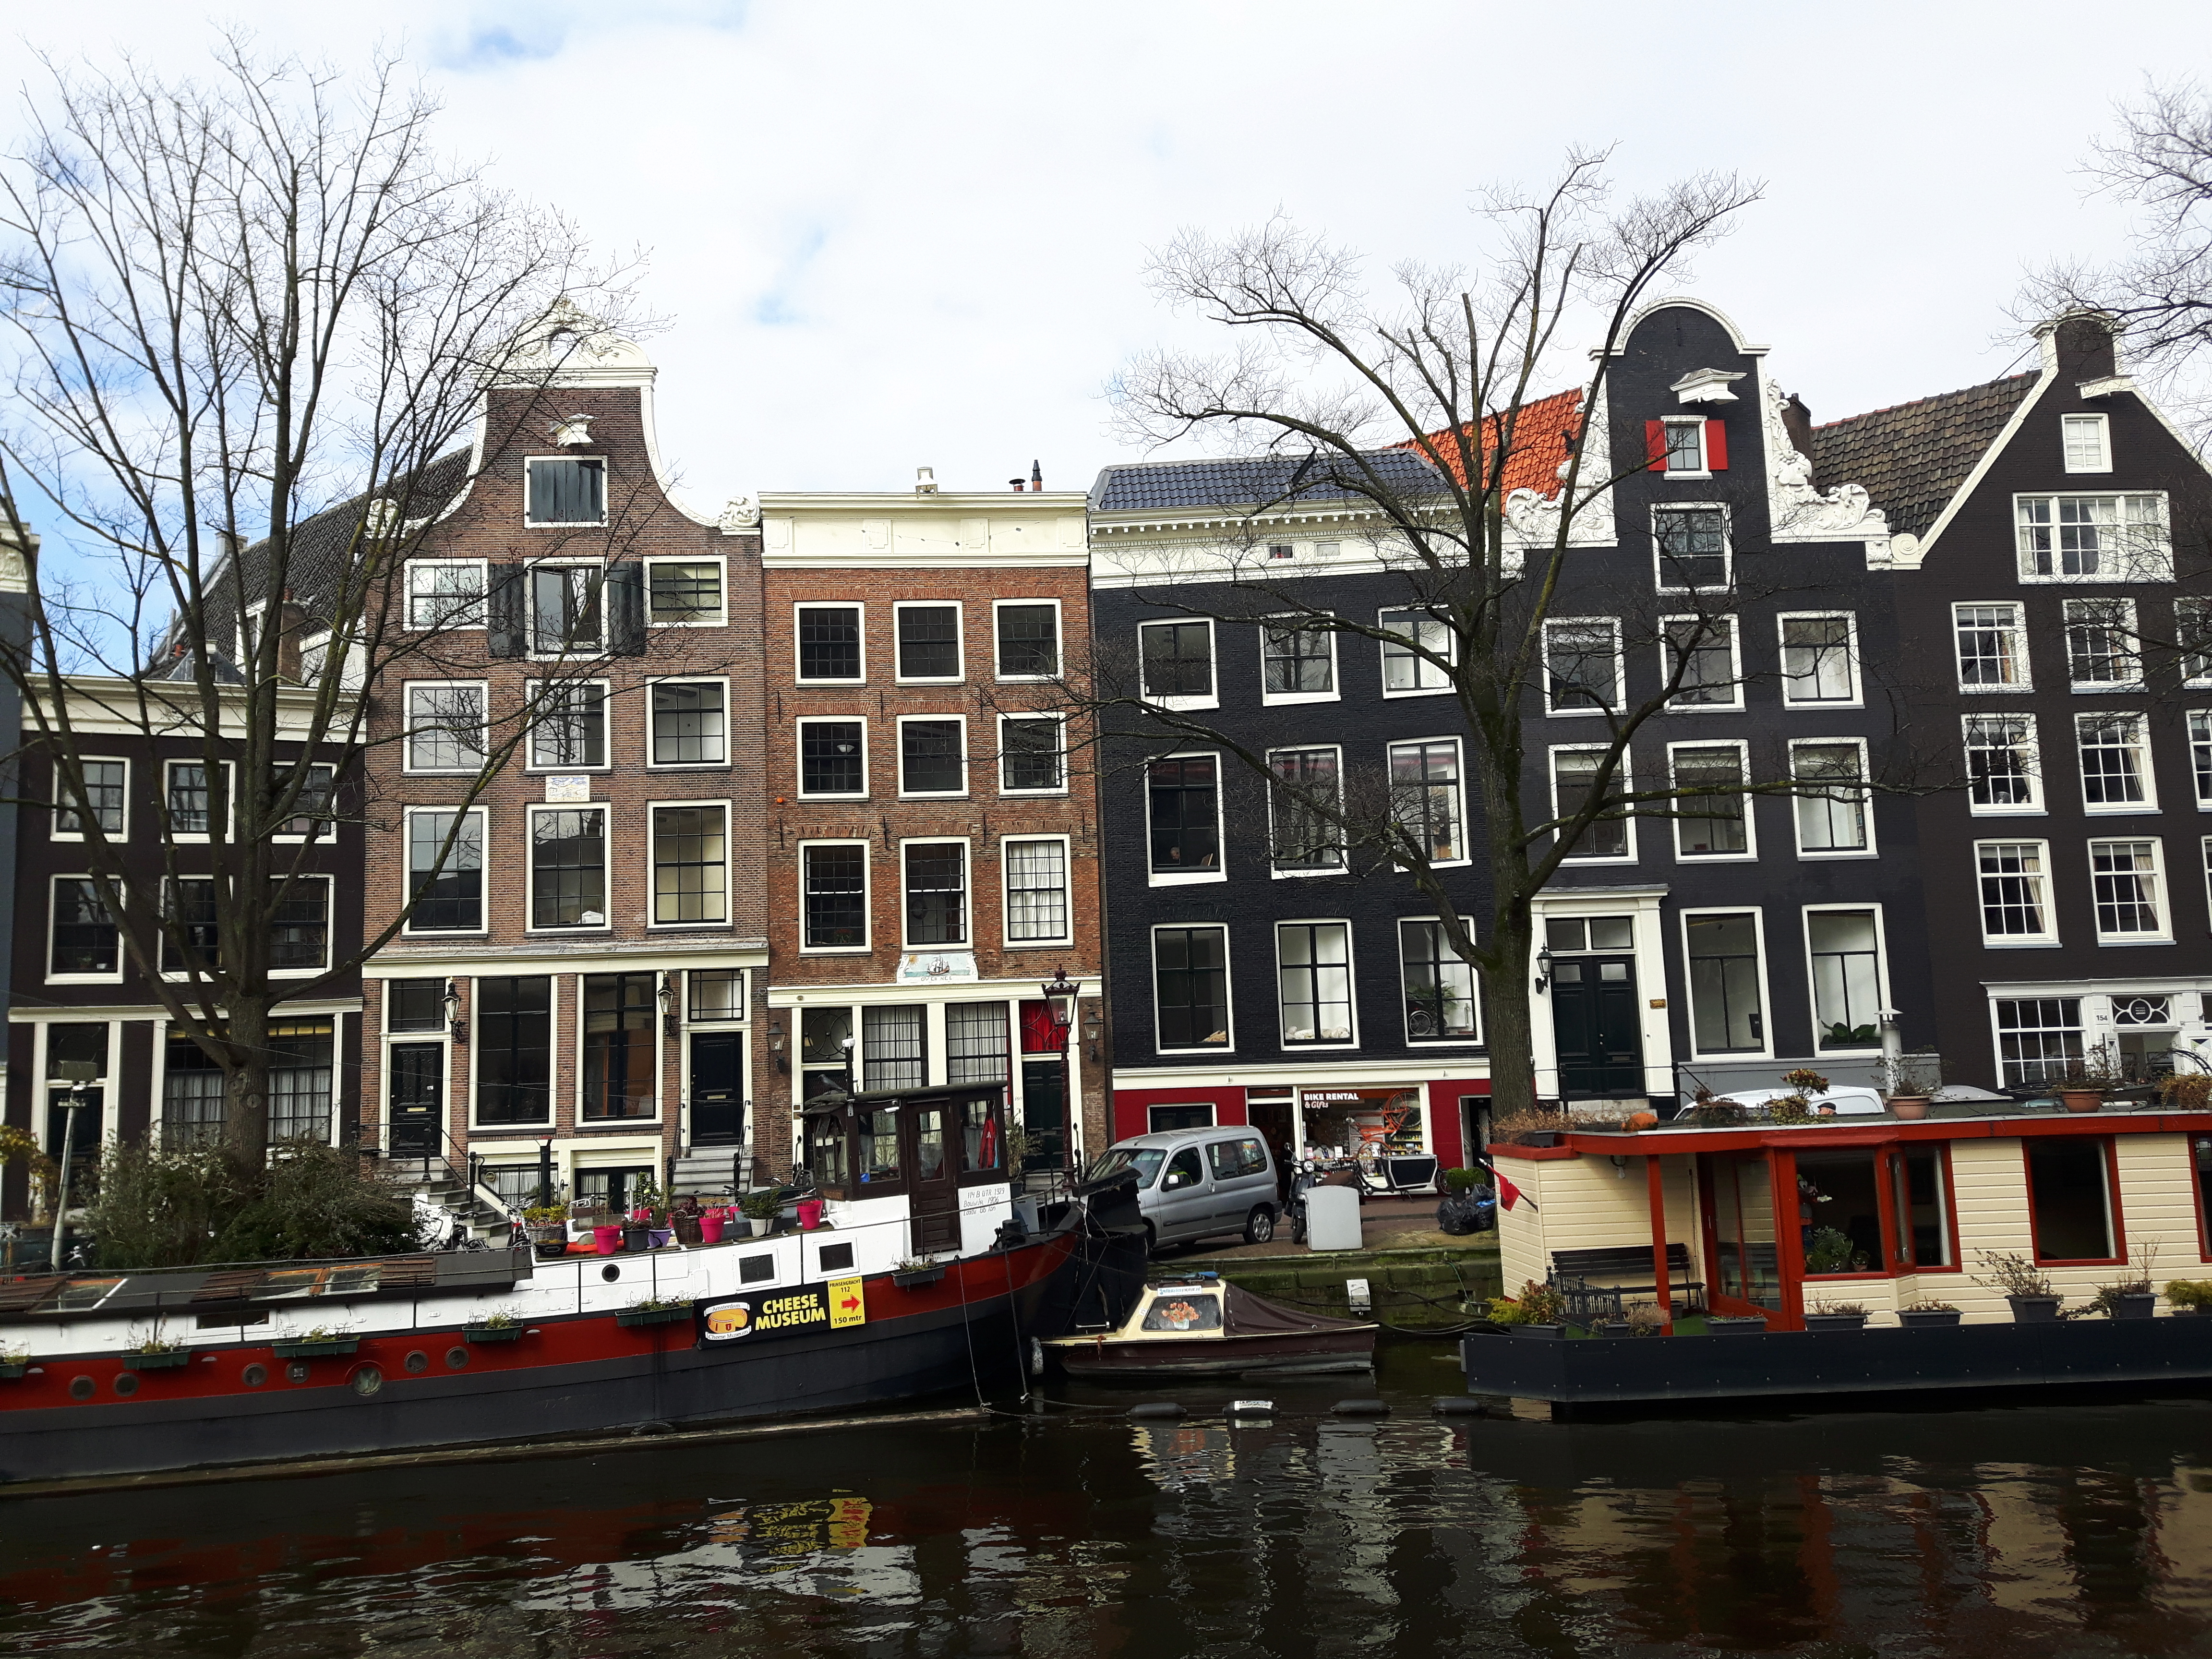 25_Photos_That_Will_Inspire_You_To_Book_A_Trip_To_The_Netherlands